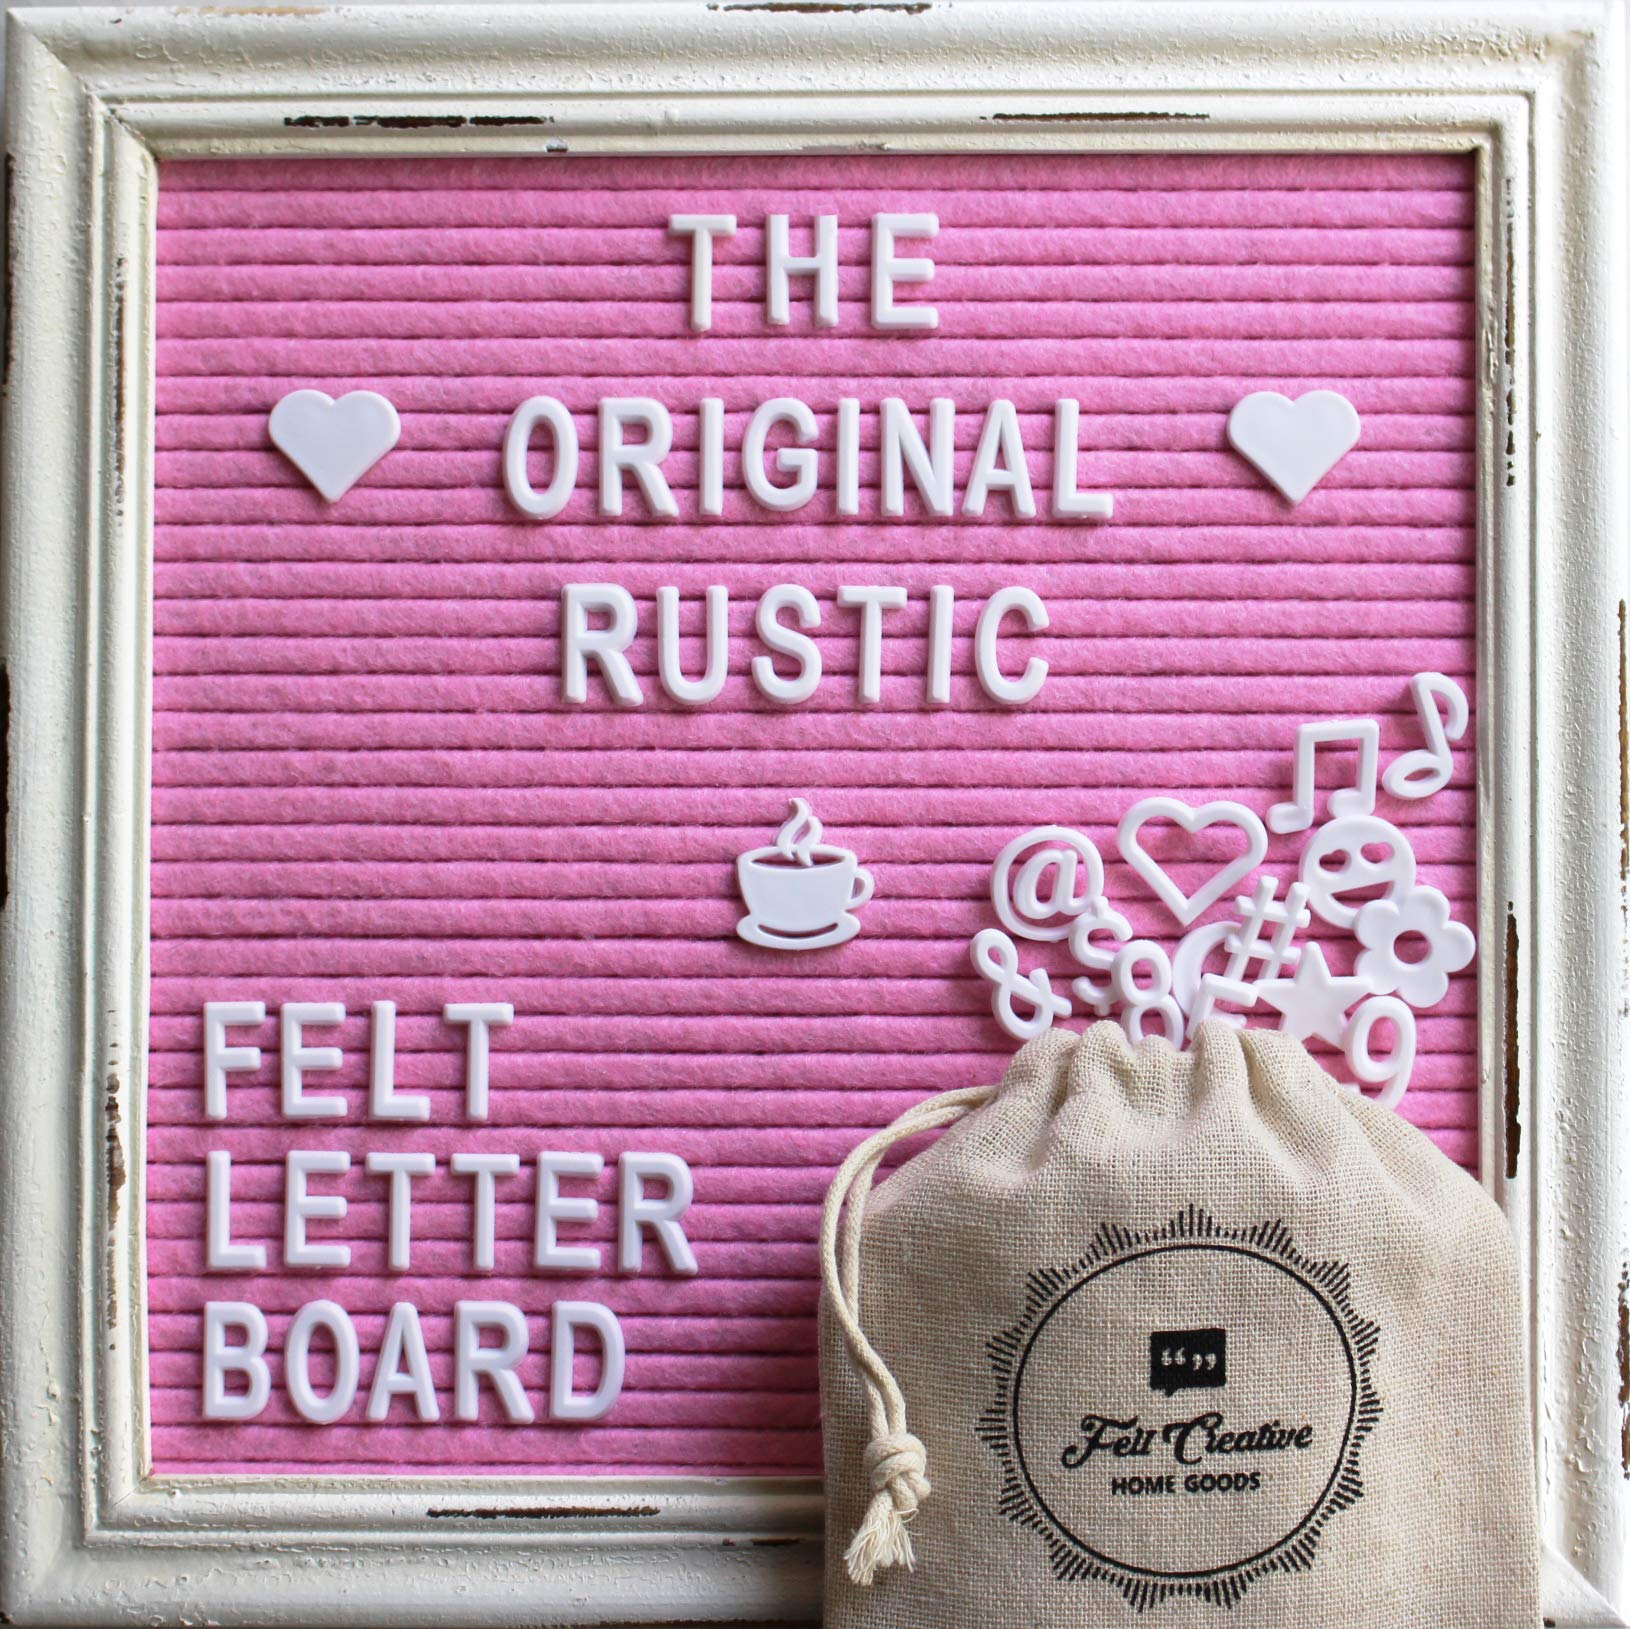 Pink Felt Letter Board Rustic White Wood Farmhouse Vintage Frame and Stand by Felt Creative Home Goods | 10''x10'' Changeable Nursery Baby Announcement Board 350 White Alphabet Letters, Numbers, Emojis